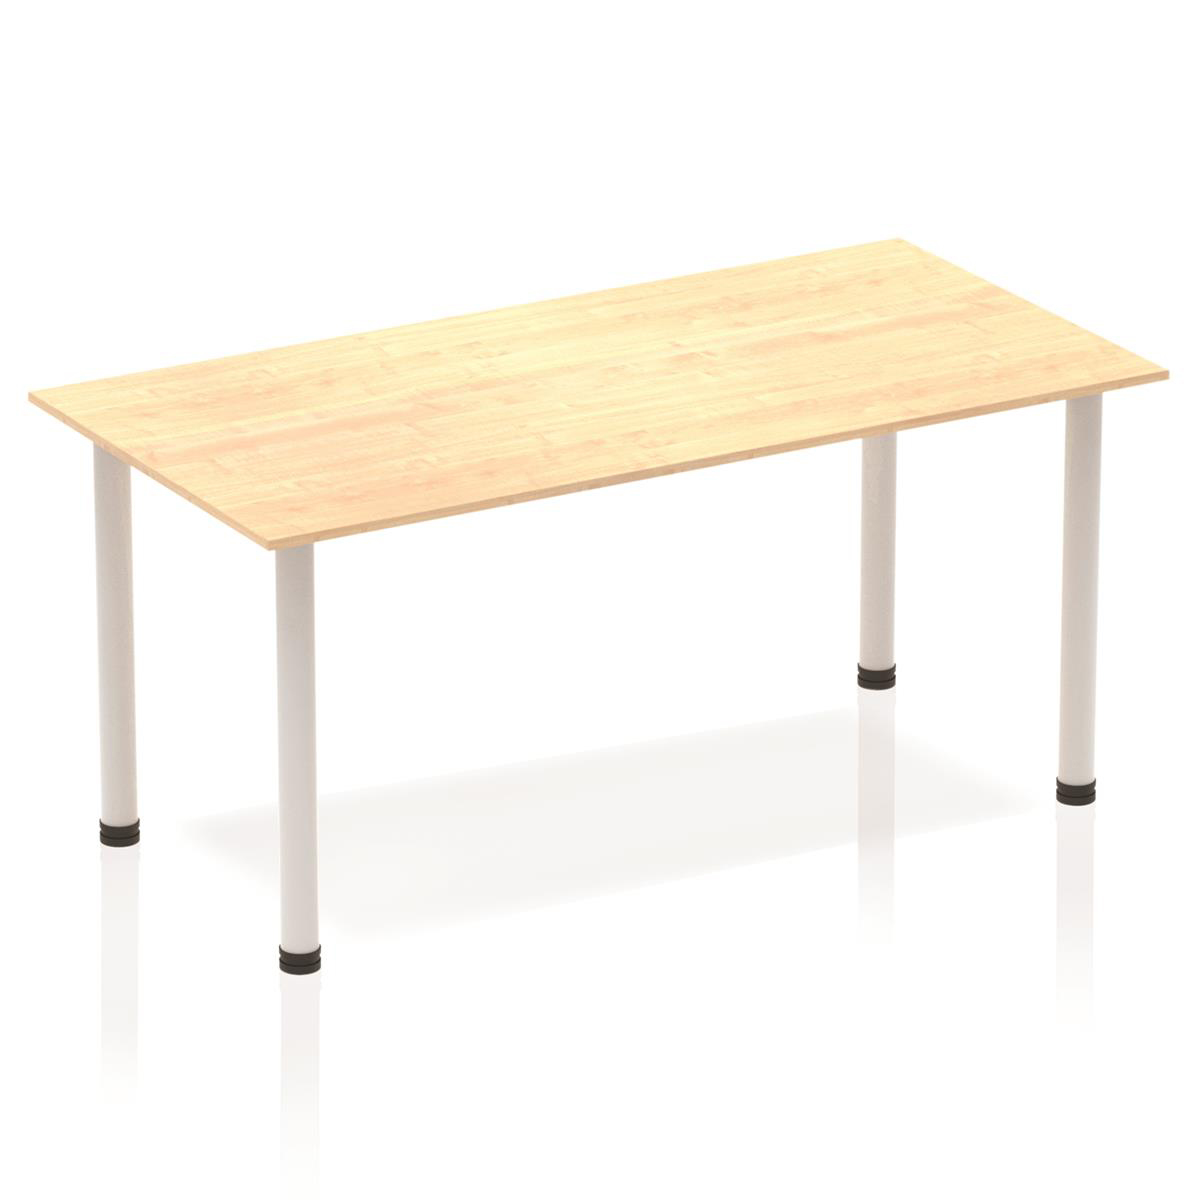 Sonix Rectangular Silver Post Leg Table 1600x800mm Maple Ref BF00192